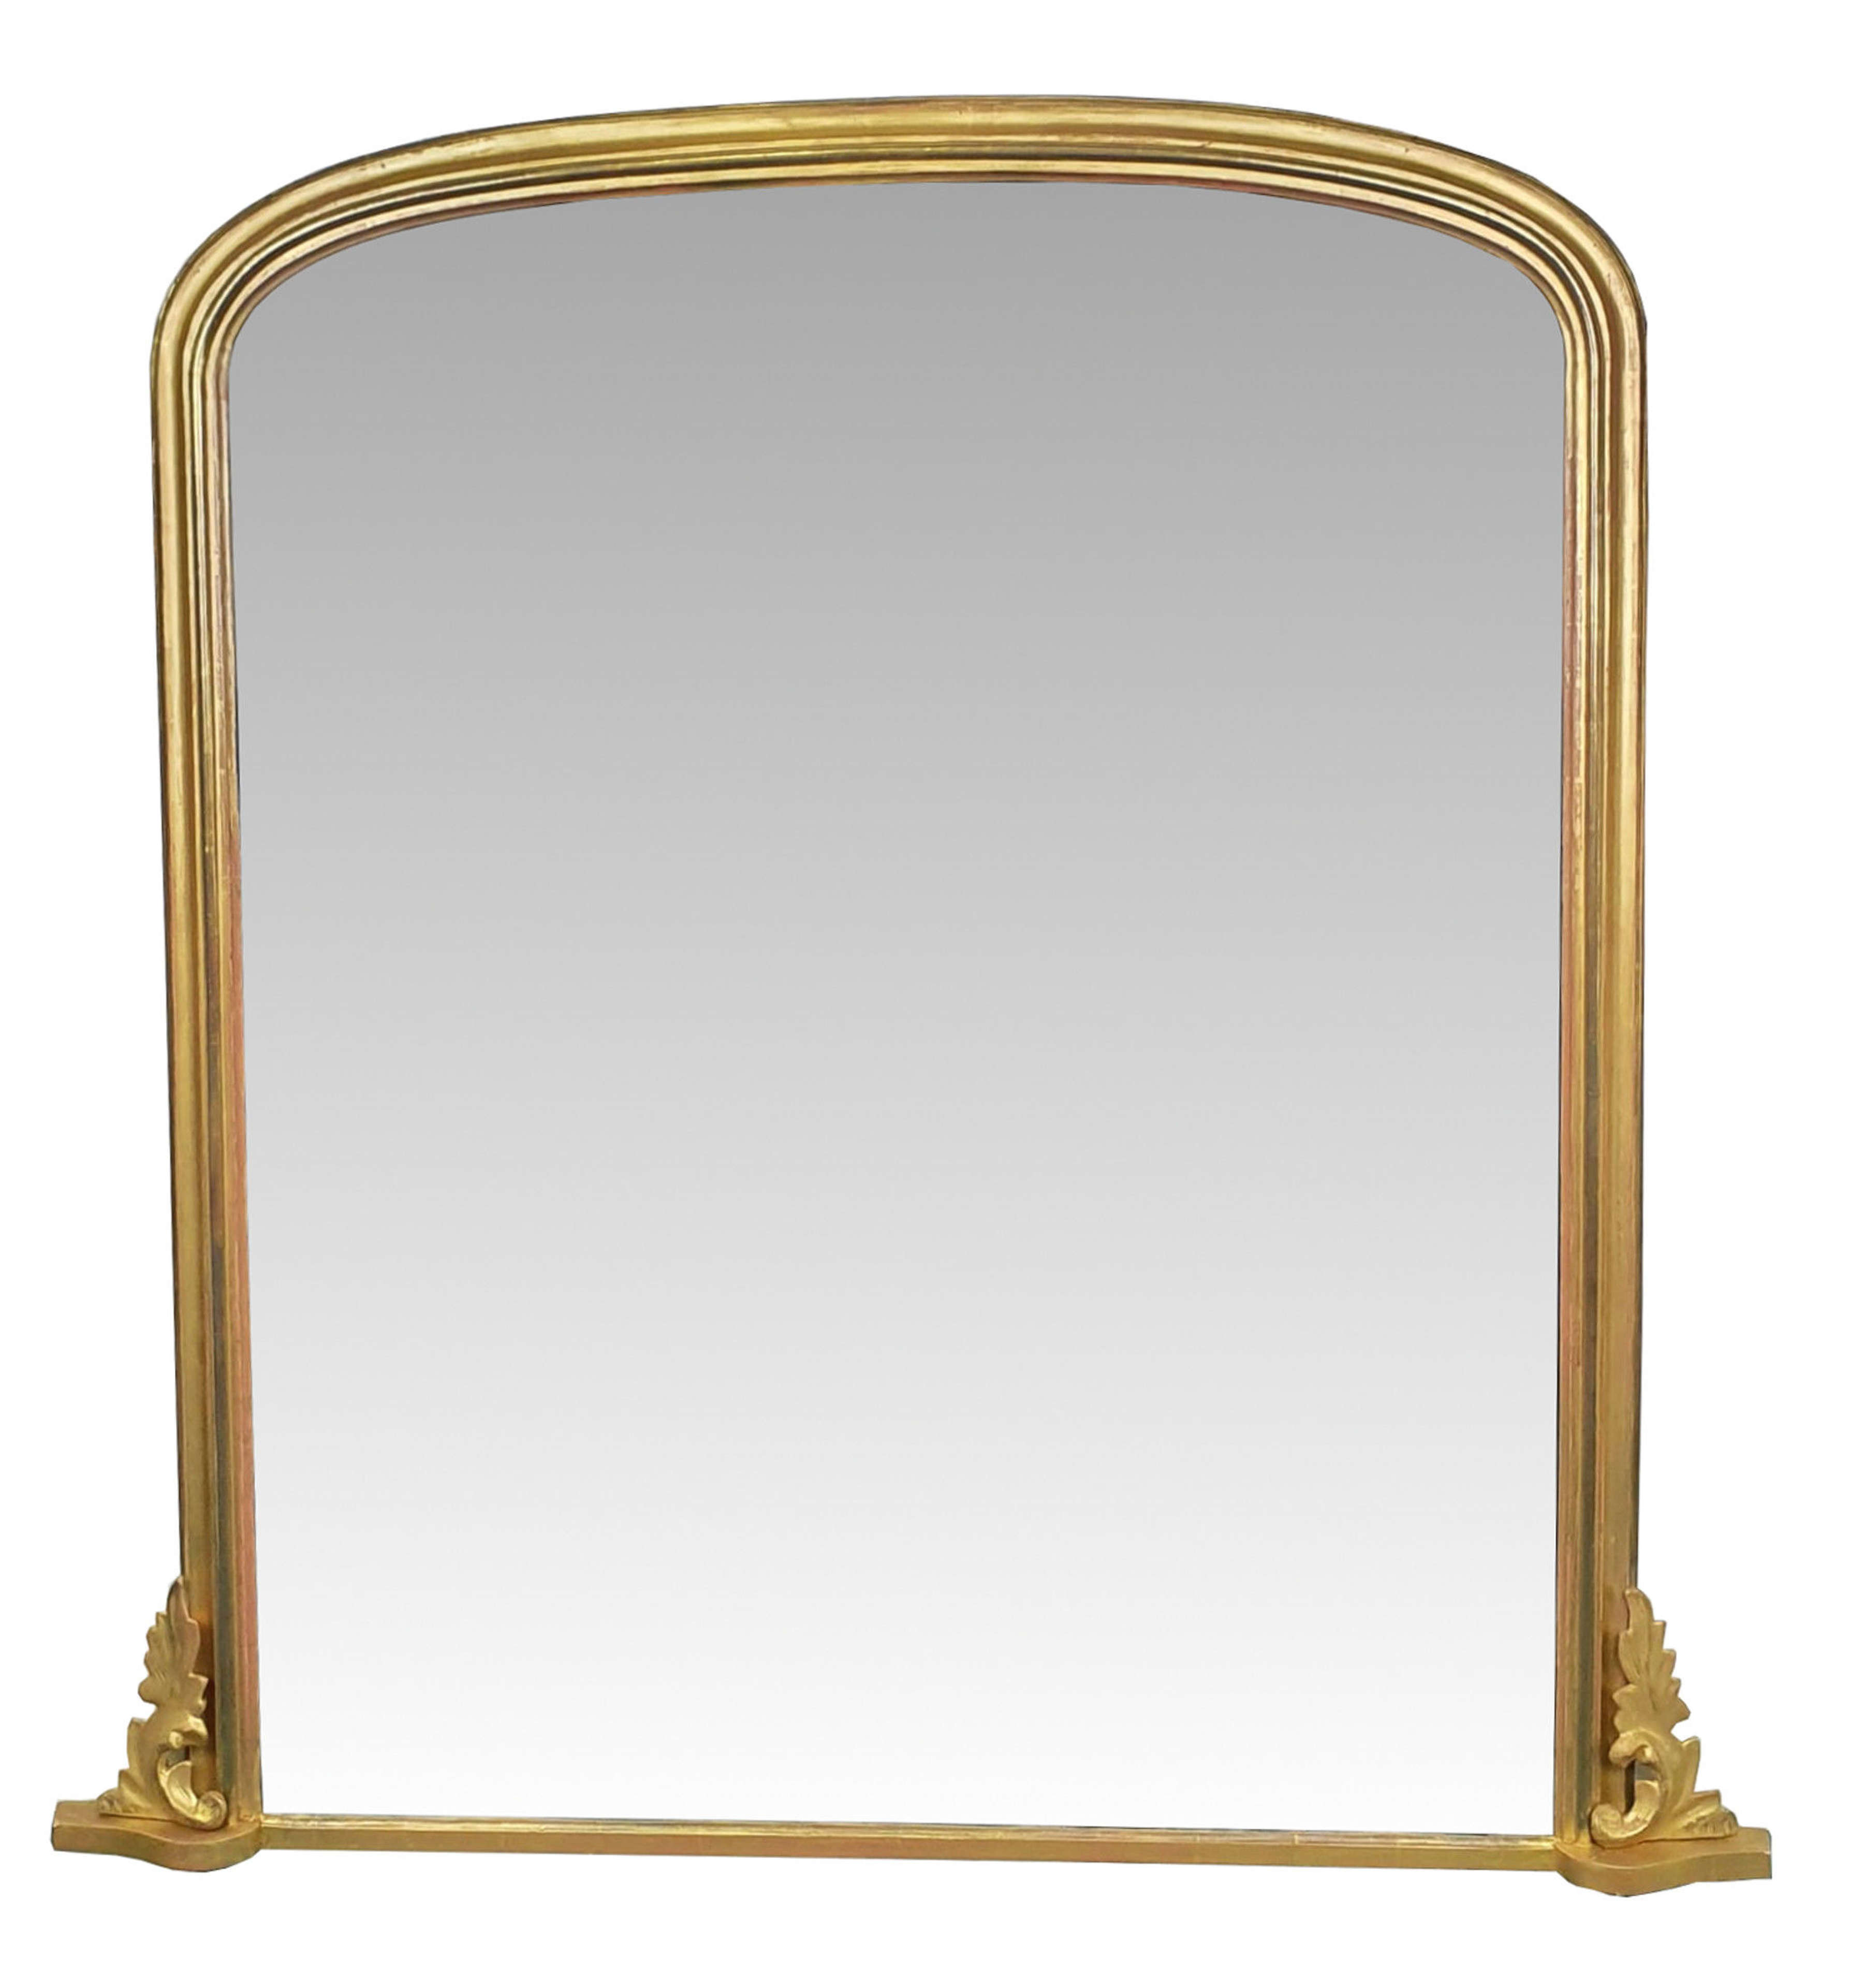 19th Century Gilt Arch Top Overmantle Mirror